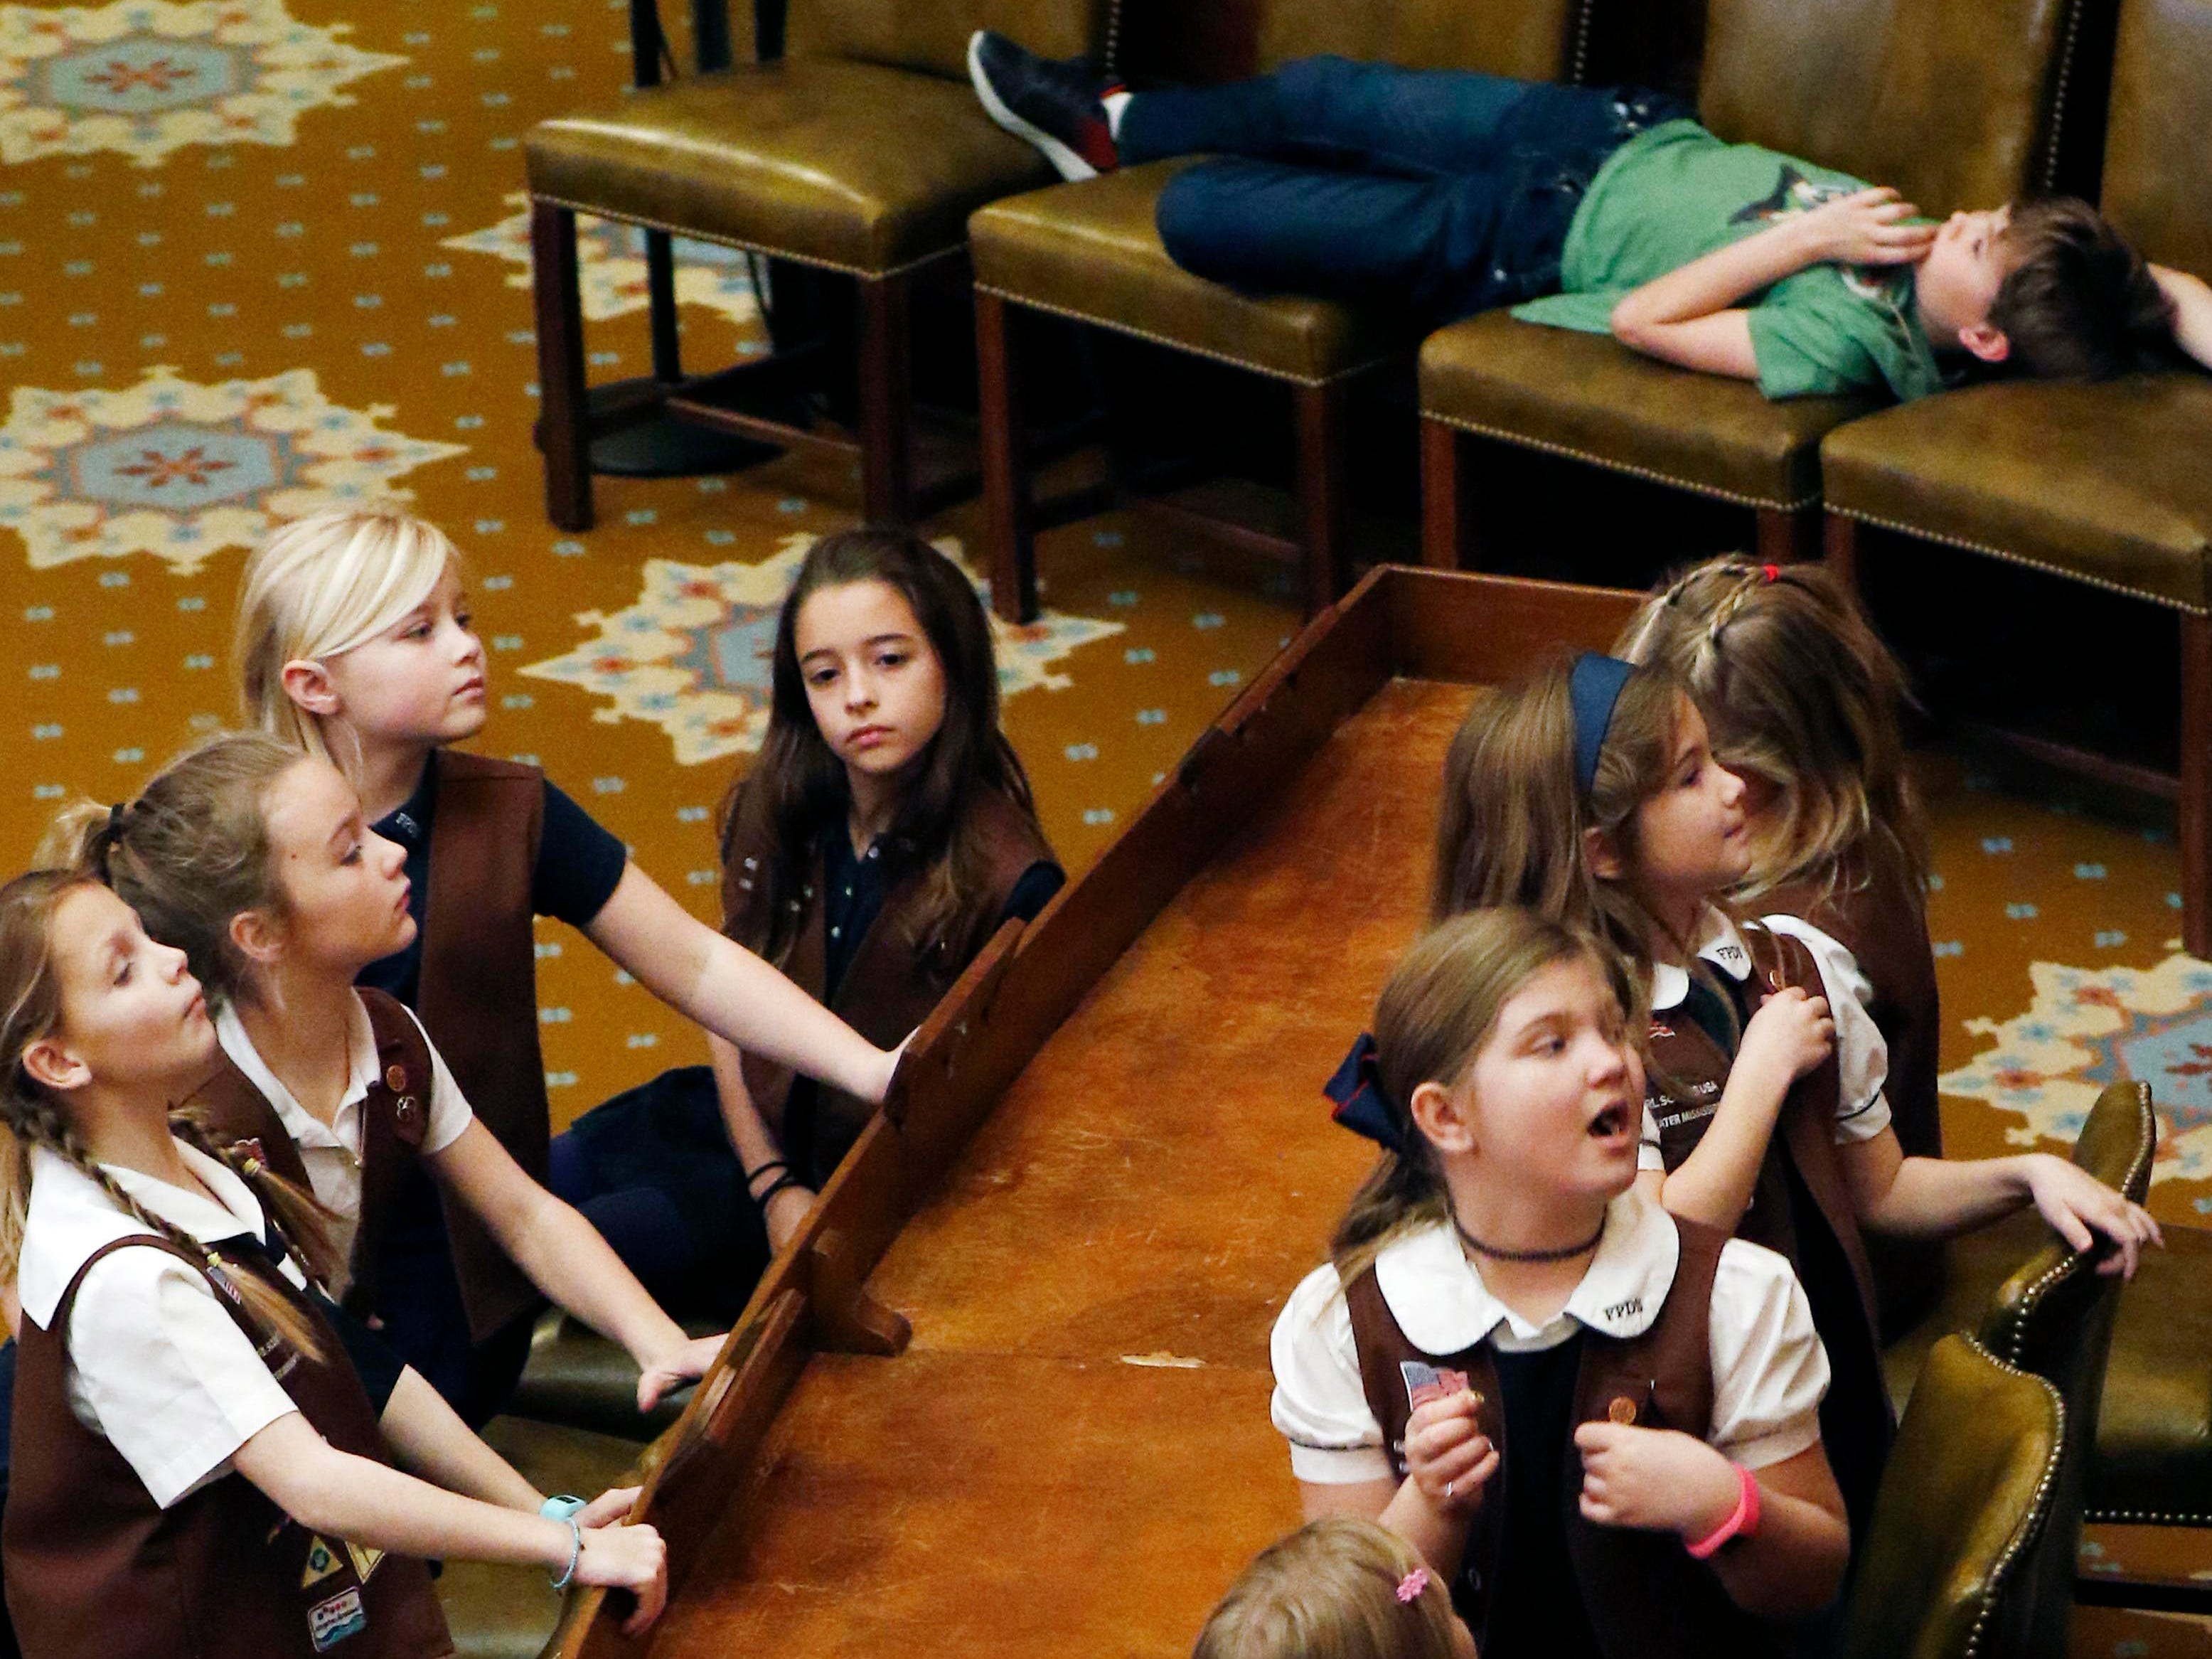 Members of Girl Scout Troop 3980 look toward the speaker's podium while George Colin, 10, an older brother to one of the Scouts, pretends to take a nap in the House chamber at the Capitol in Jackson, Miss., Monday, Jan. 7, 2019. The troop of mainly second graders, based at First Presbyterian Day School, toured the Capitol prior to Tuesday's start of the 2019 Mississippi Legislature.